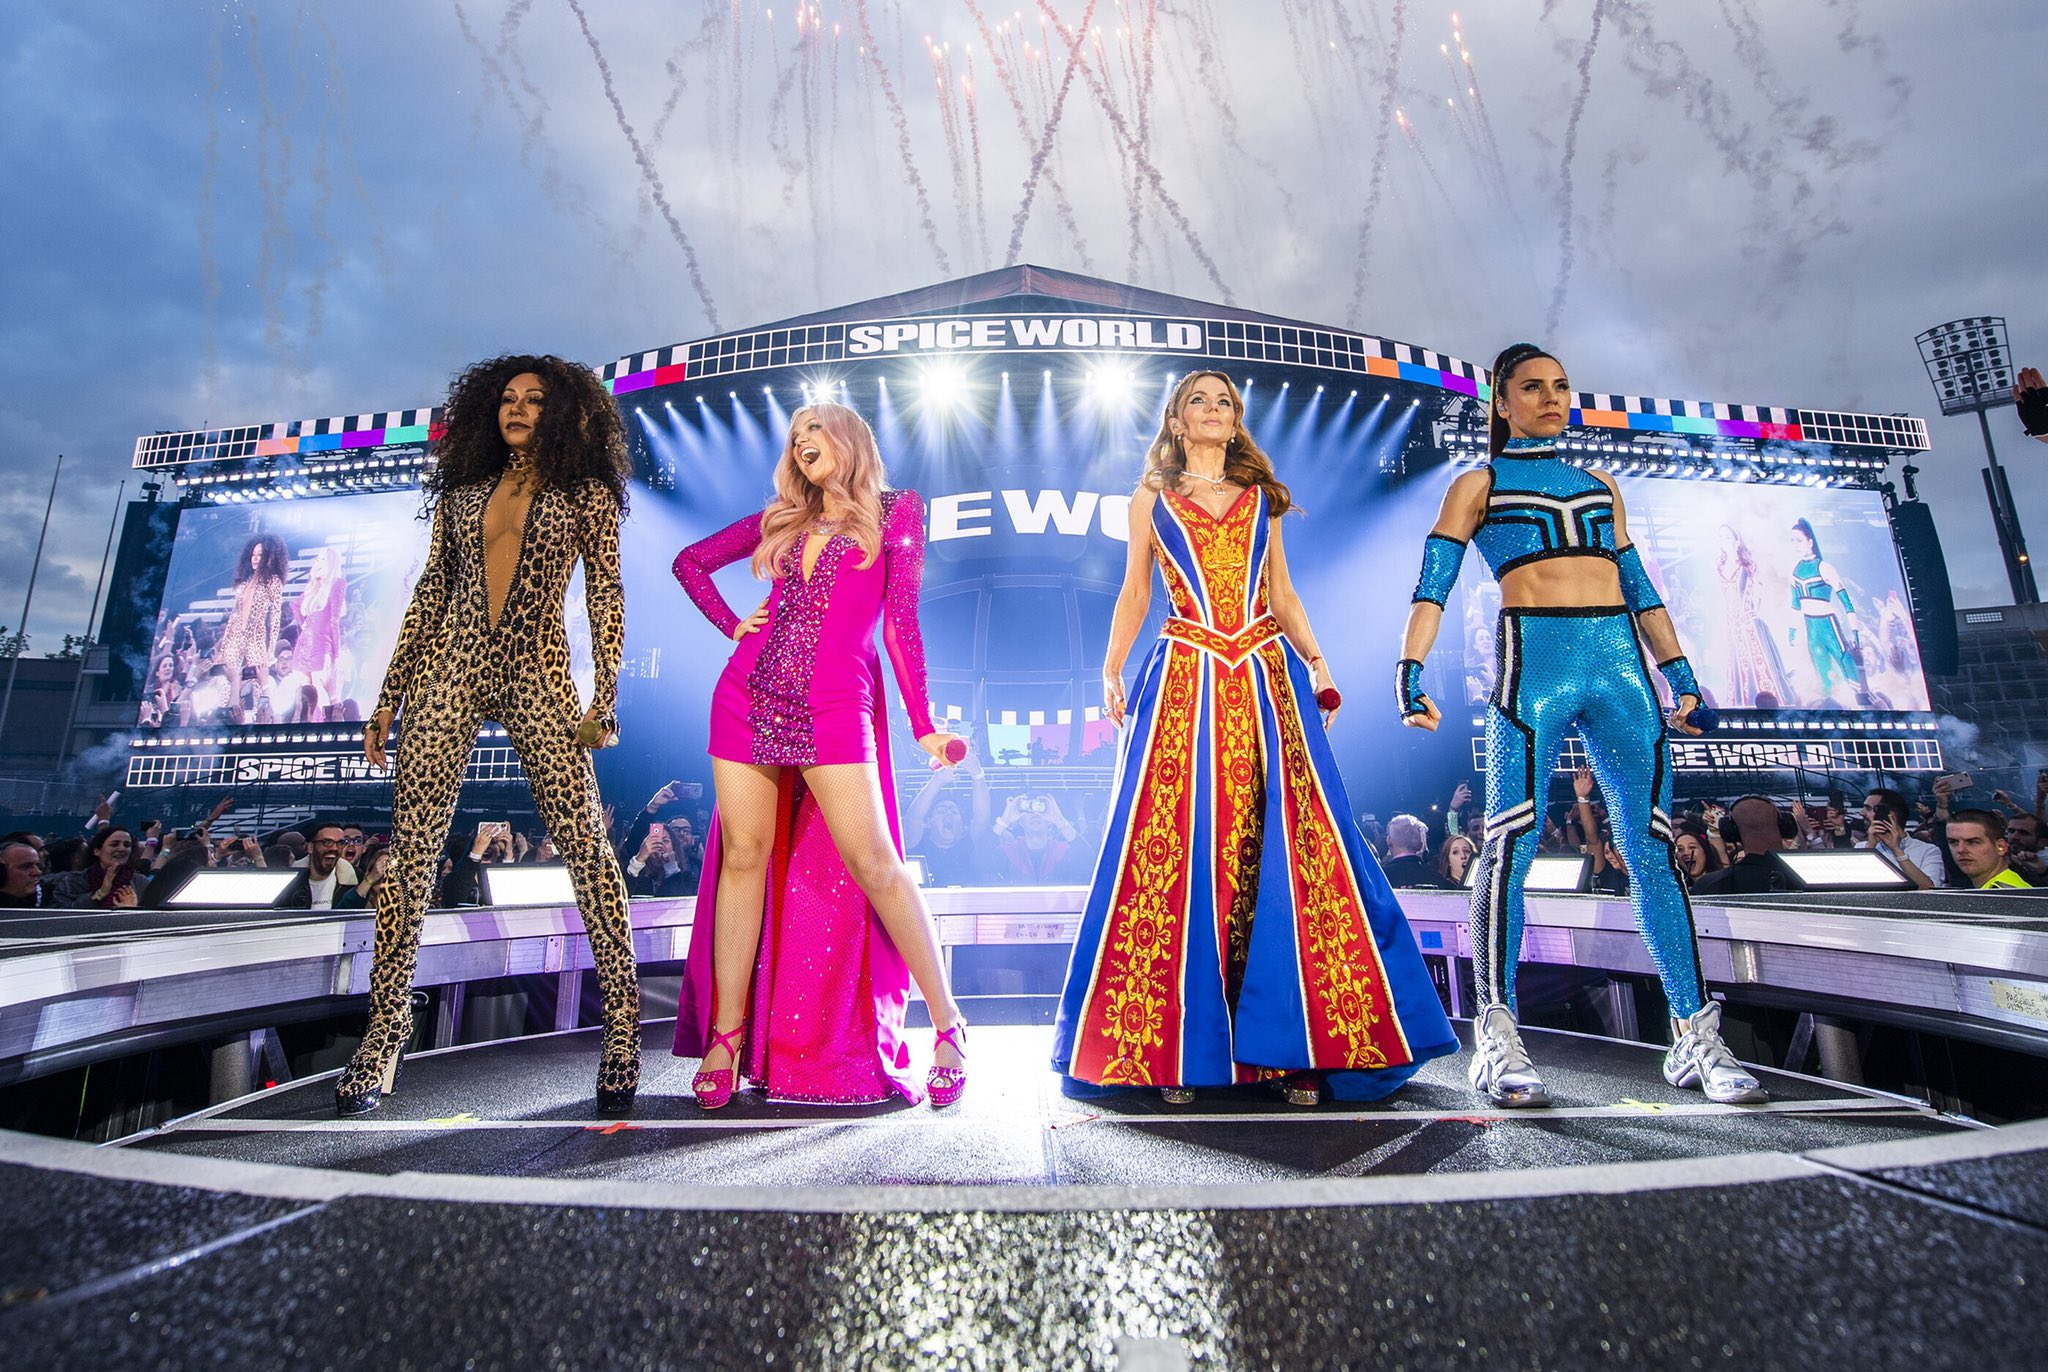 Les Spice Girls le 24 mai 2019 à Cardiff, photo par Andrew Timms